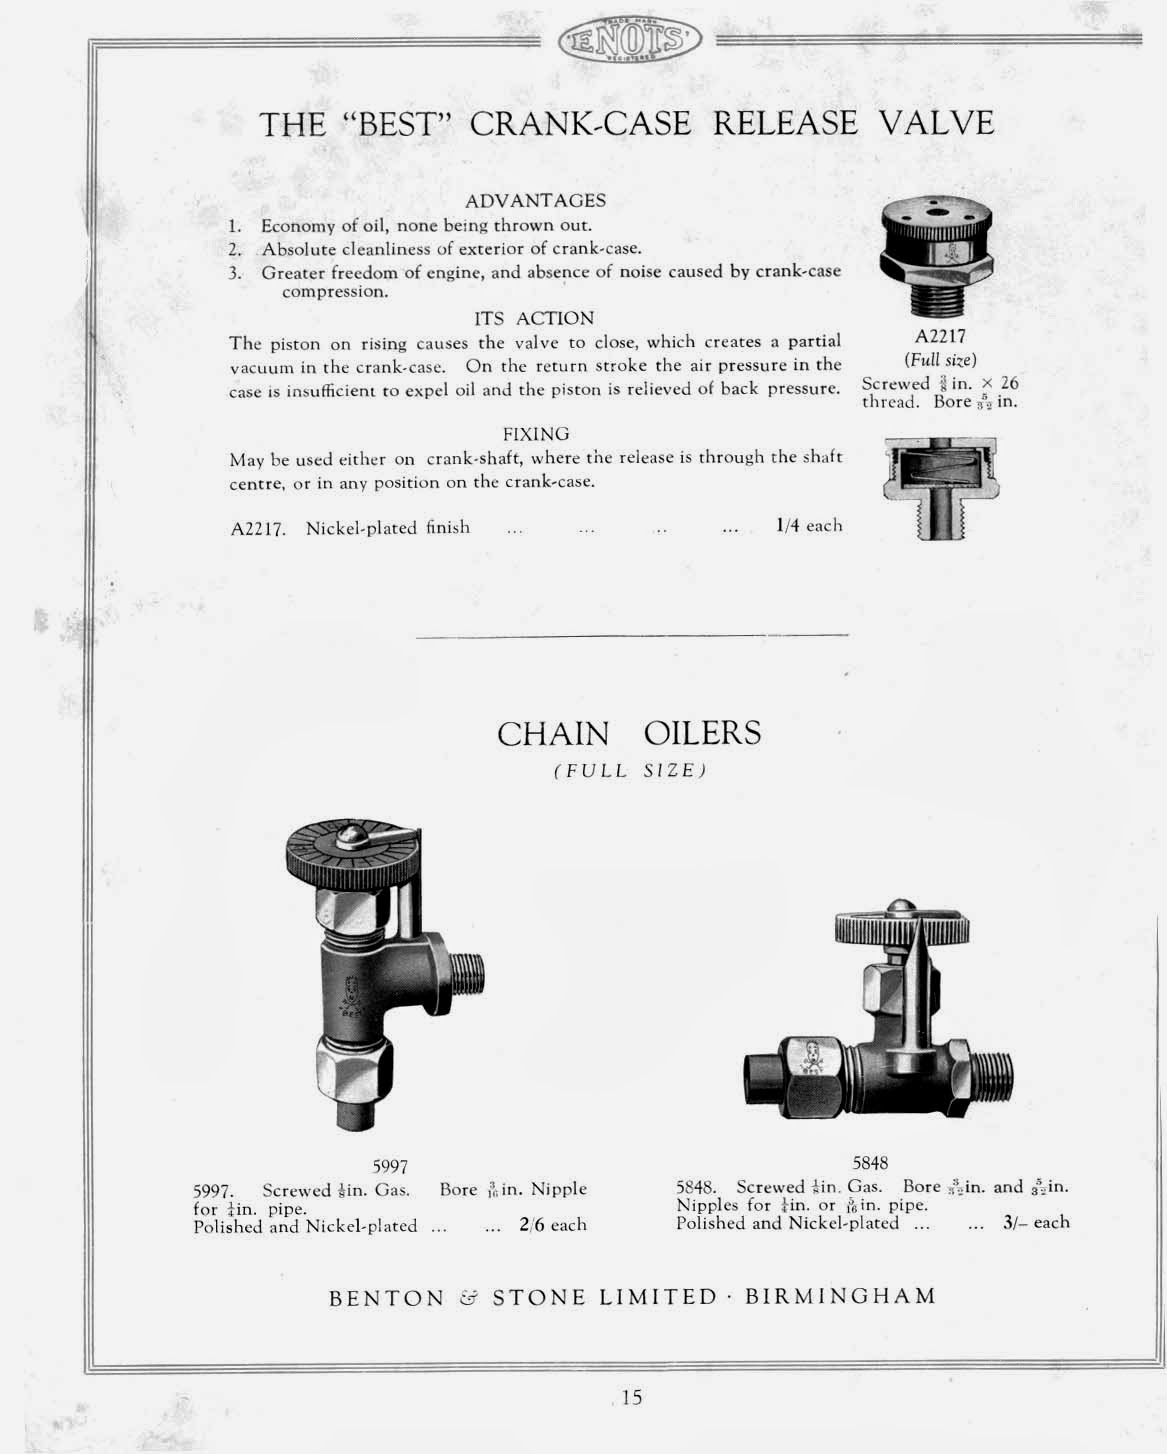 Iu0027ve two other pages from another Enots catalogue but thatu0027s all...could be also prewar or immediately postwar.  sc 1 st  The Velobanjogent & The Velobanjogent: A look at a 1938 Enots Benton u0026 Stone Ltd ...